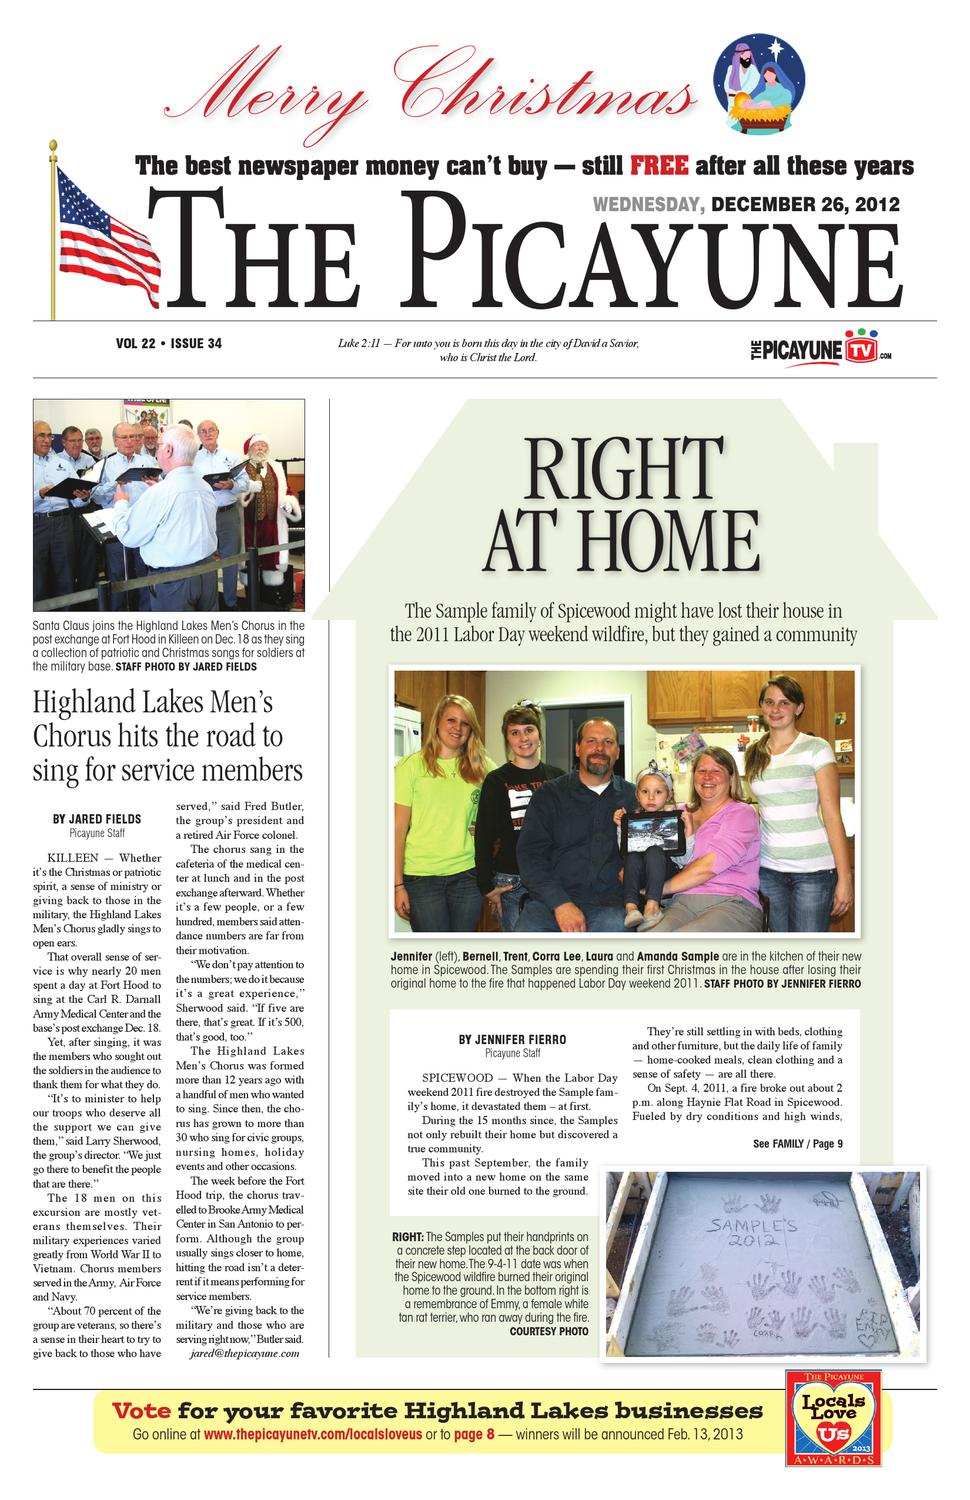 The picayune christmas 2012 edition by 101 corpus christi issuu fandeluxe Choice Image